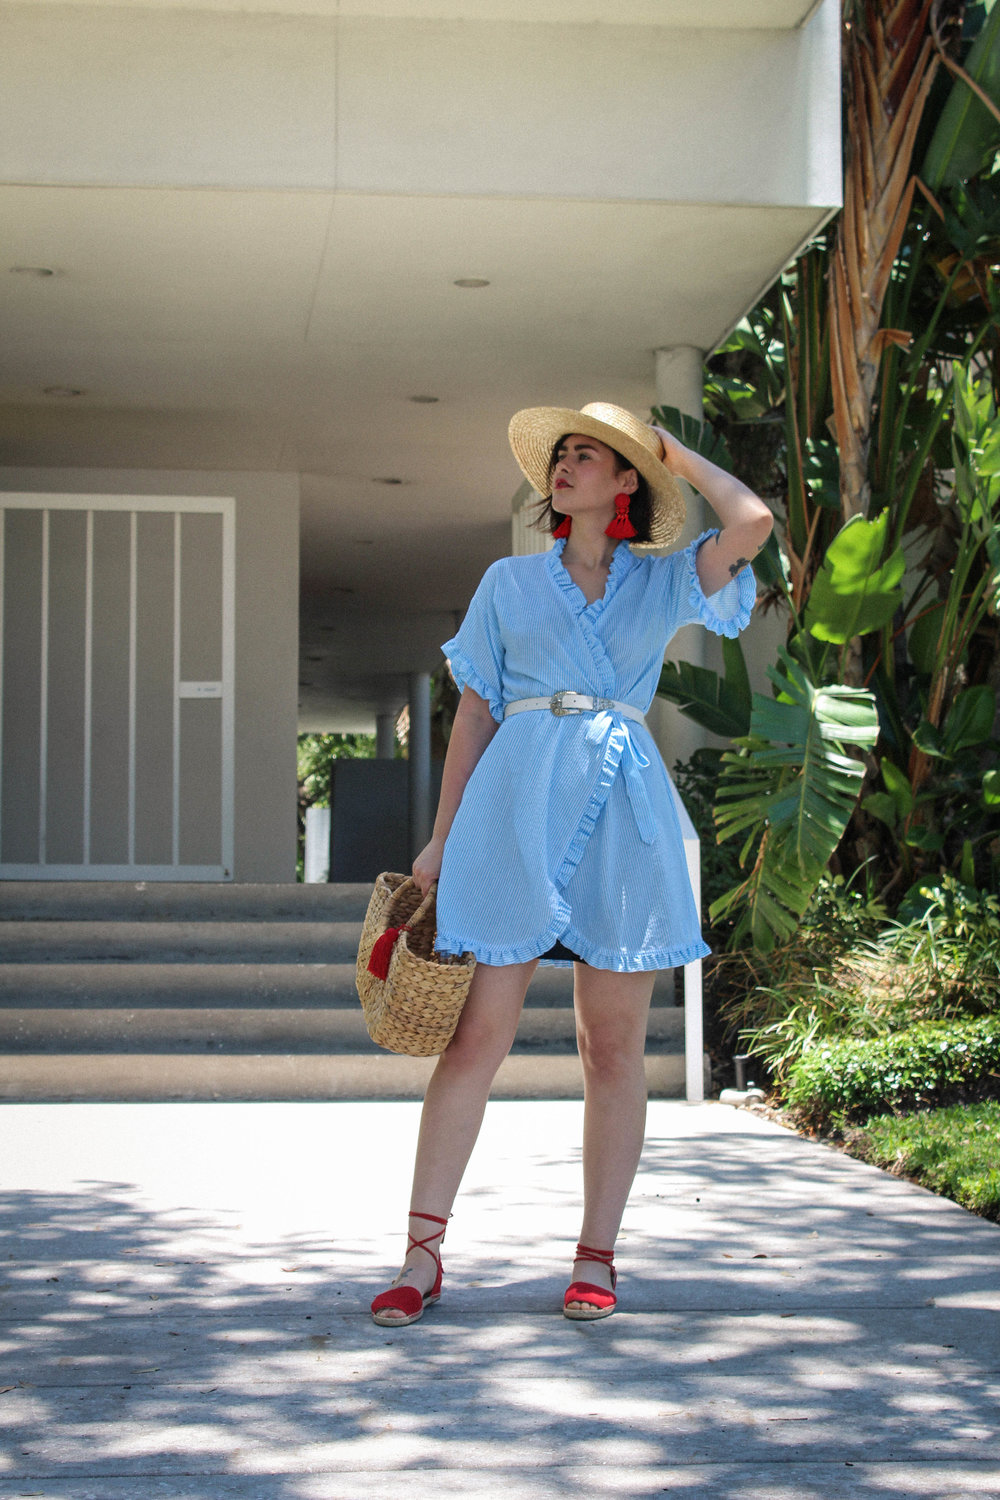 vacationdress-2.jpg